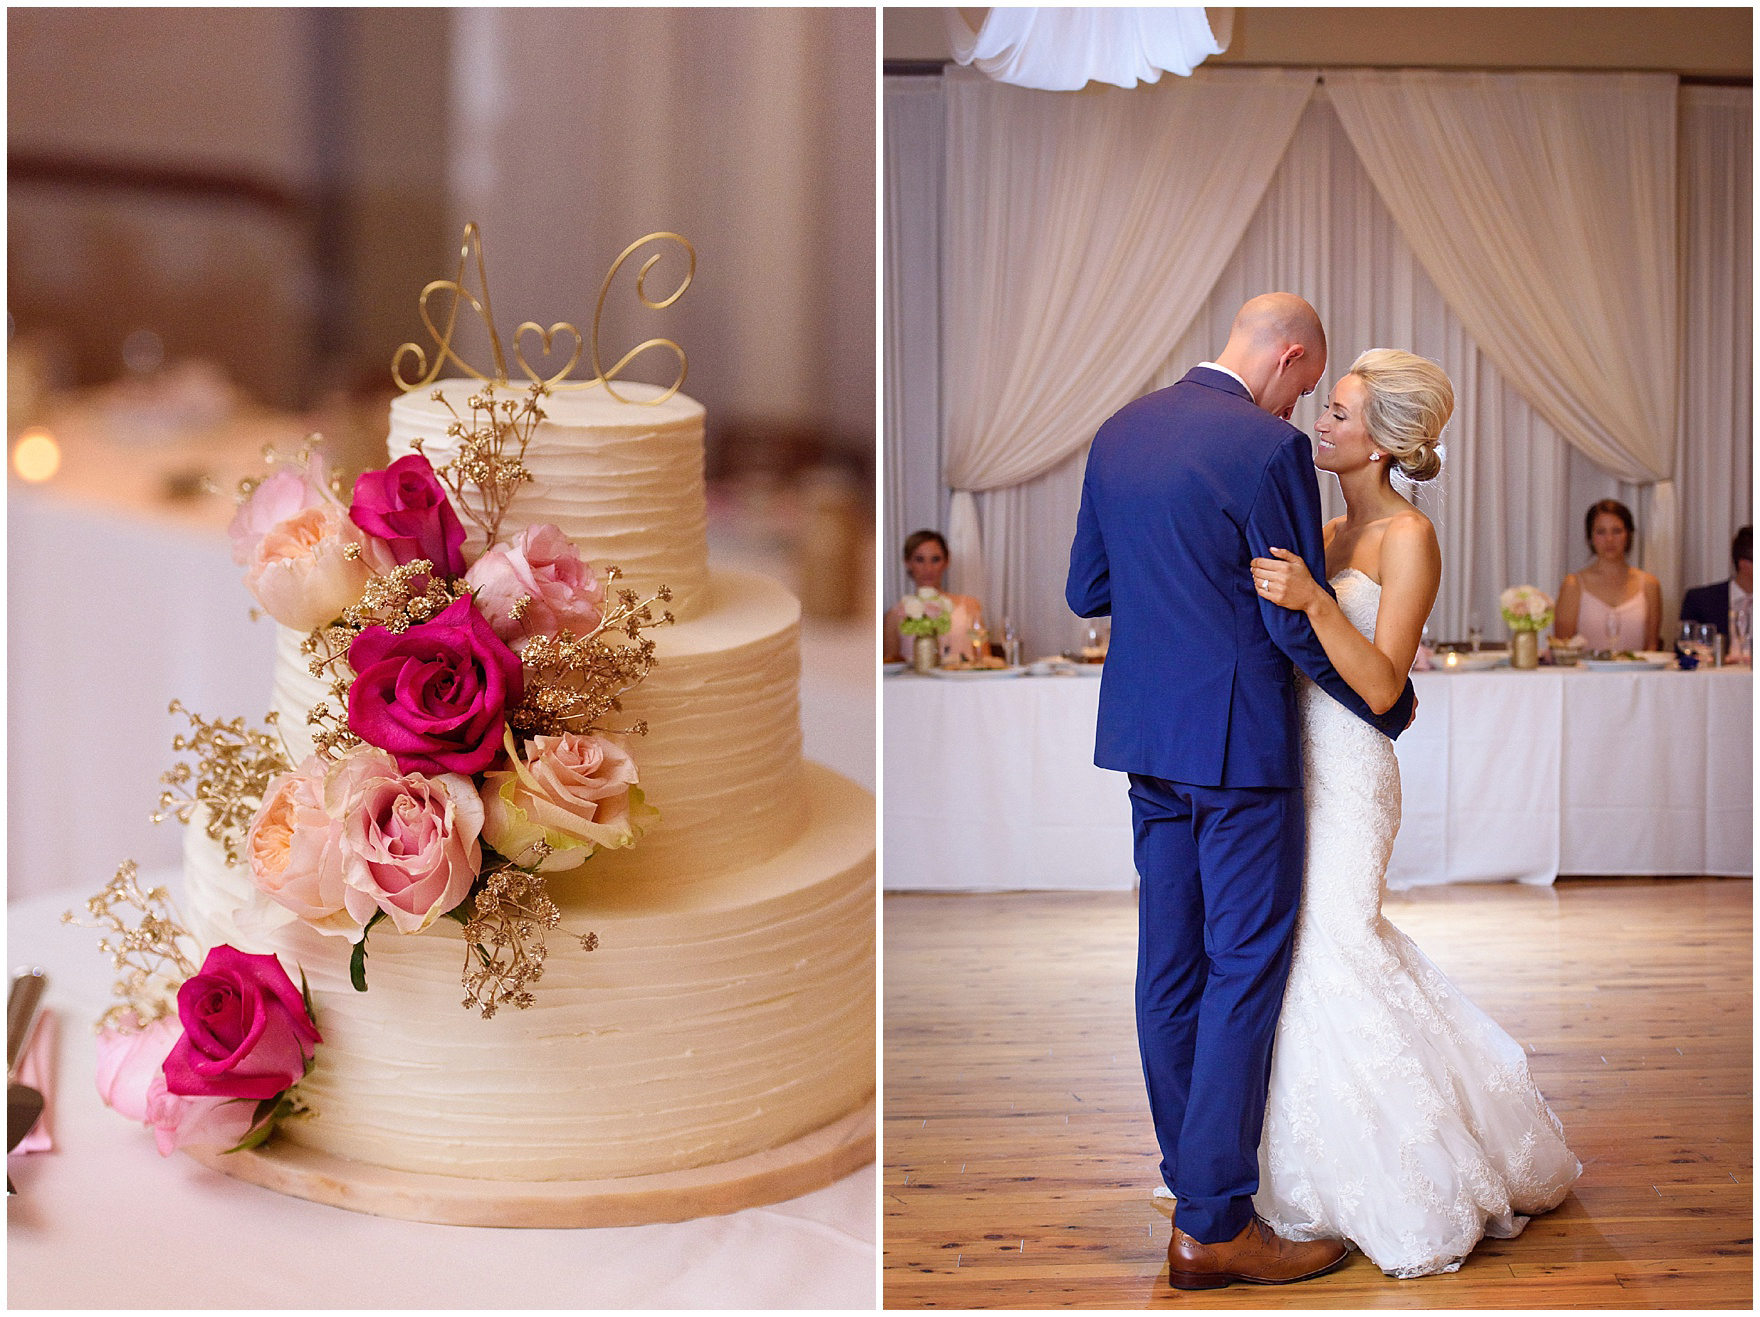 The bride and groom share their first dance for a St. Josephs Downers Grove Pinstripes Oak Brook, Illinois wedding.